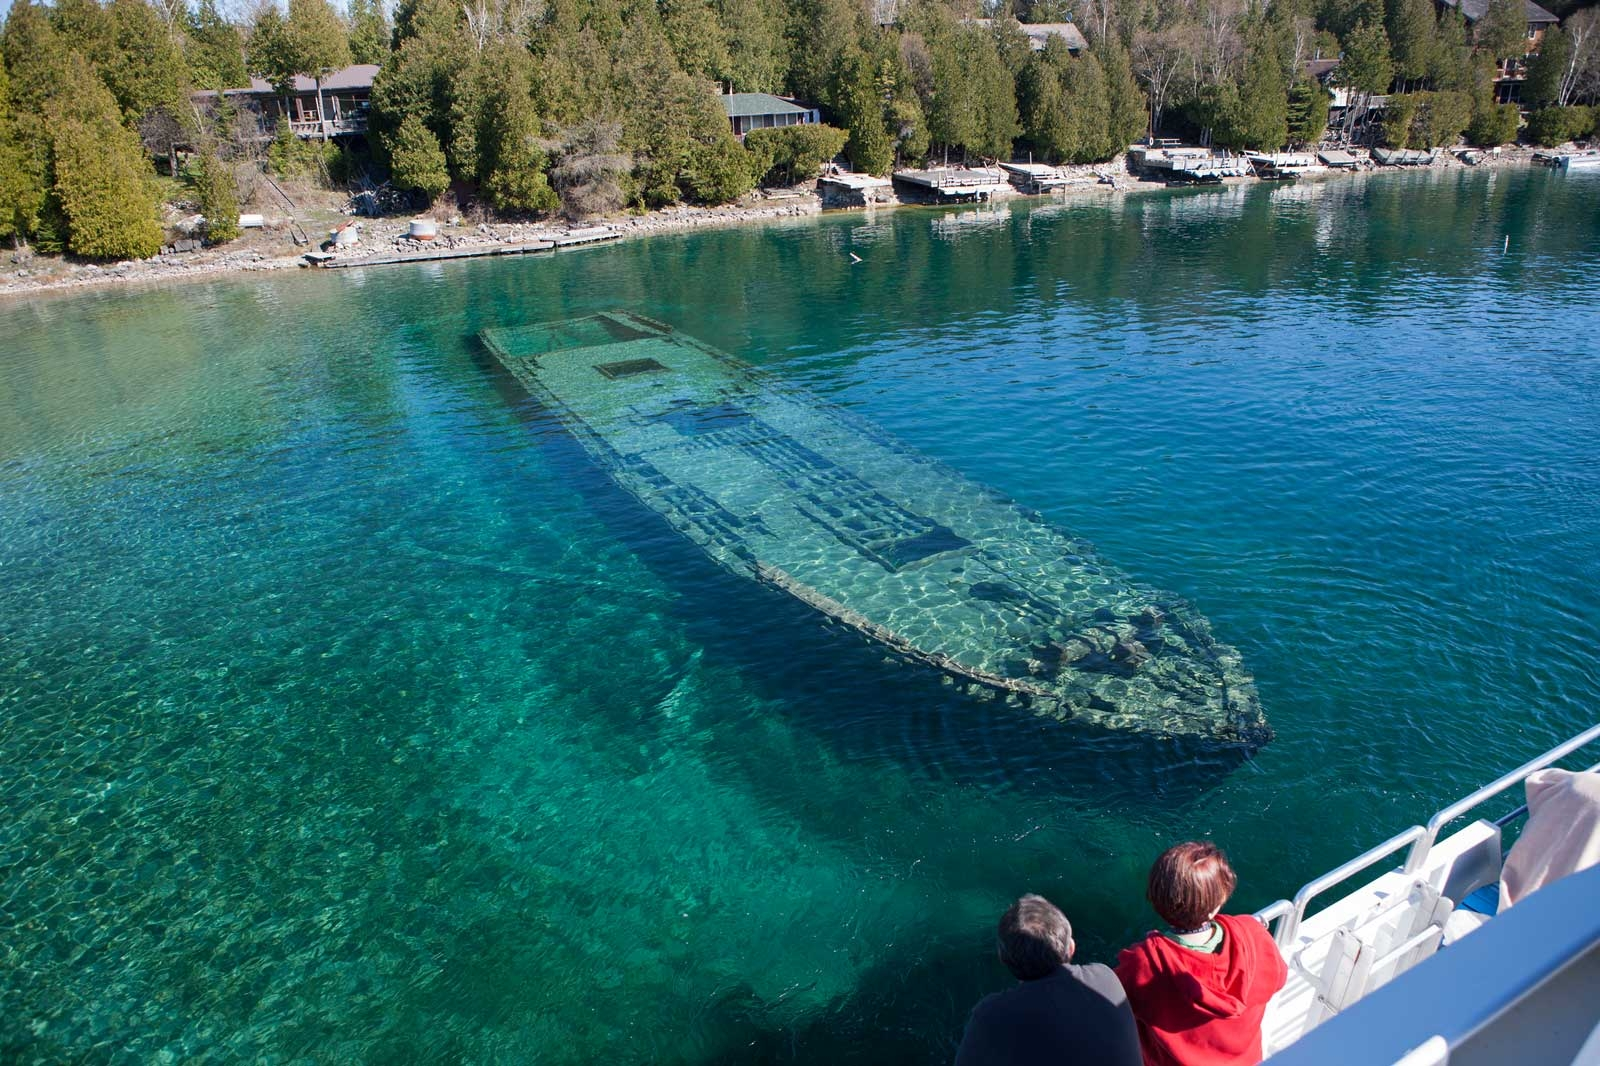 sweepstakes a shipwreck forgotten by time Sweepstakes - view of sweepstakes shipwreck through clear water - posted by greg.